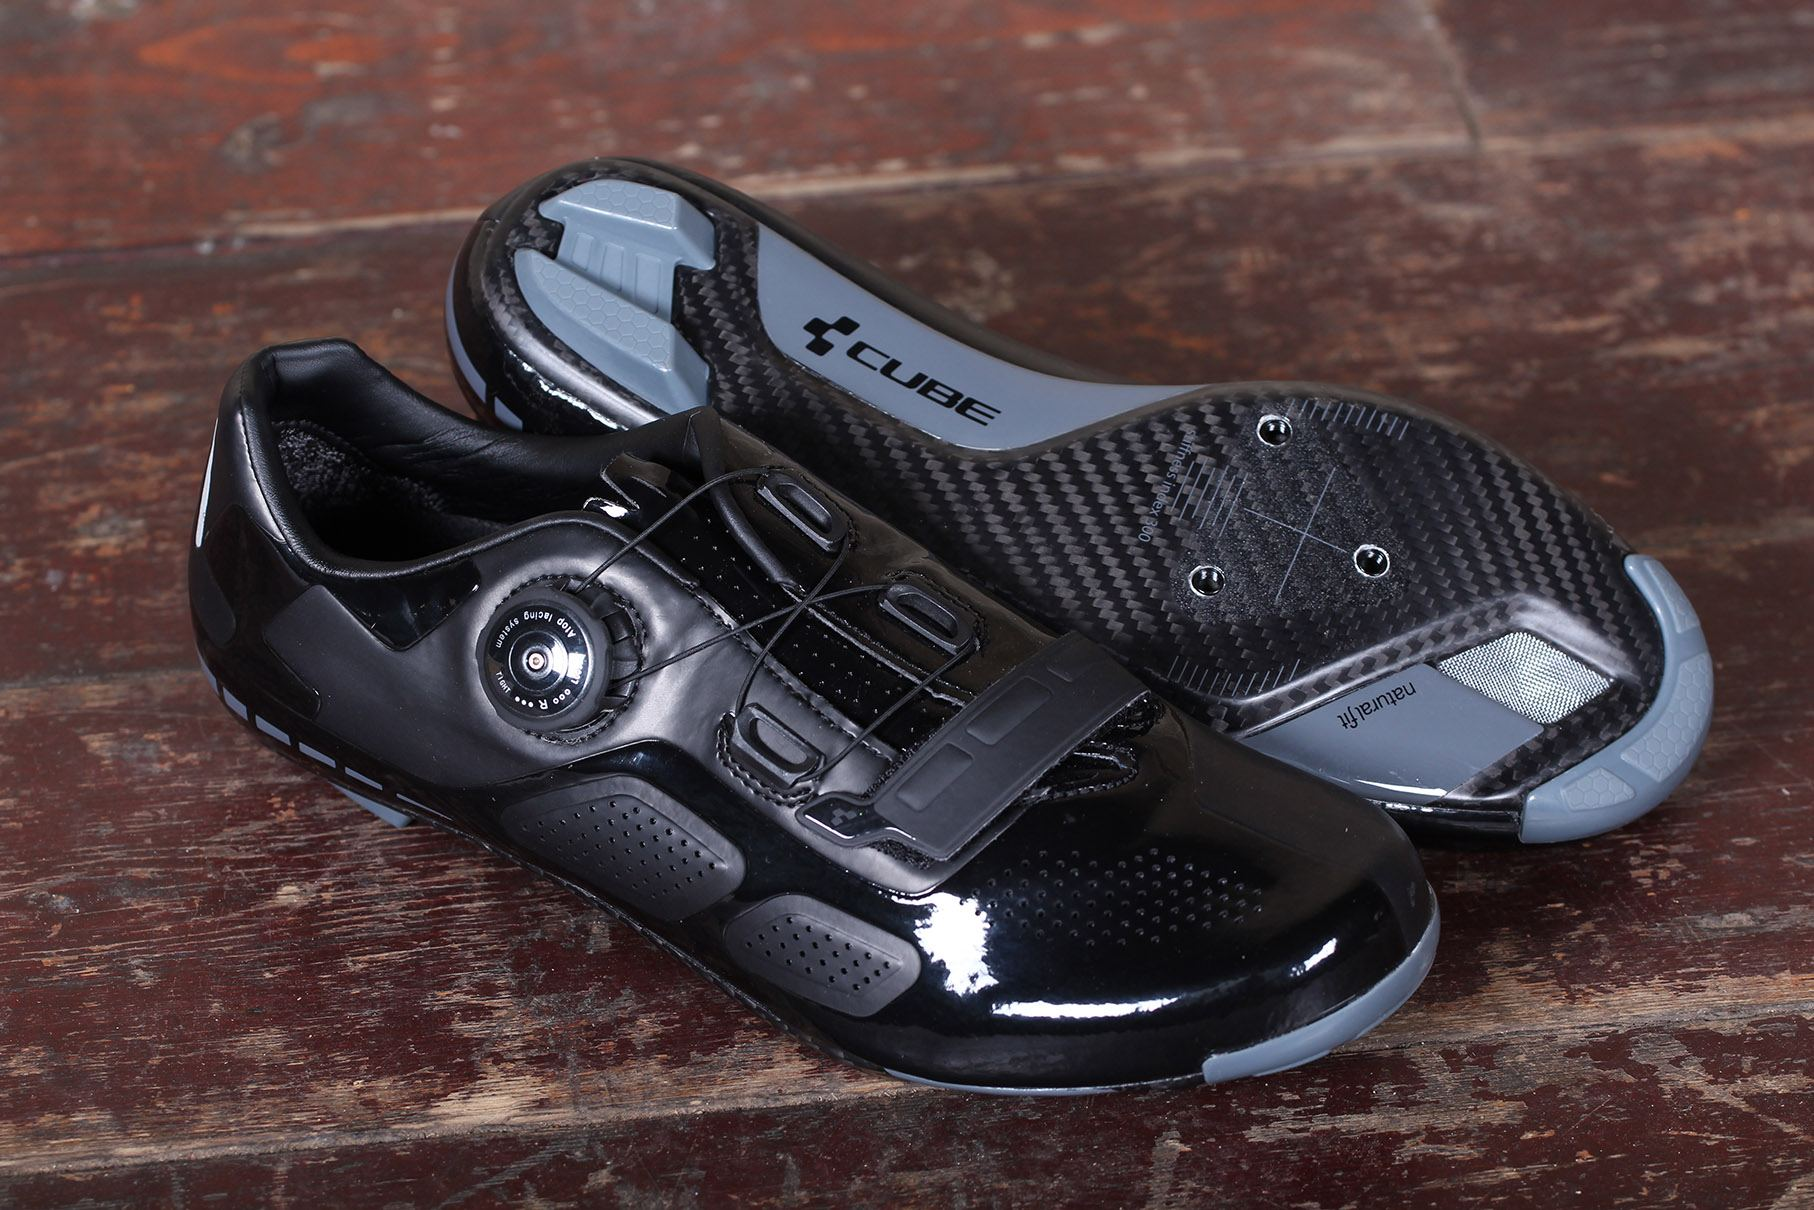 Bicycle Shoe Road Cube C 62 43 Ultralight Carbon Ultralight 582 Size 43